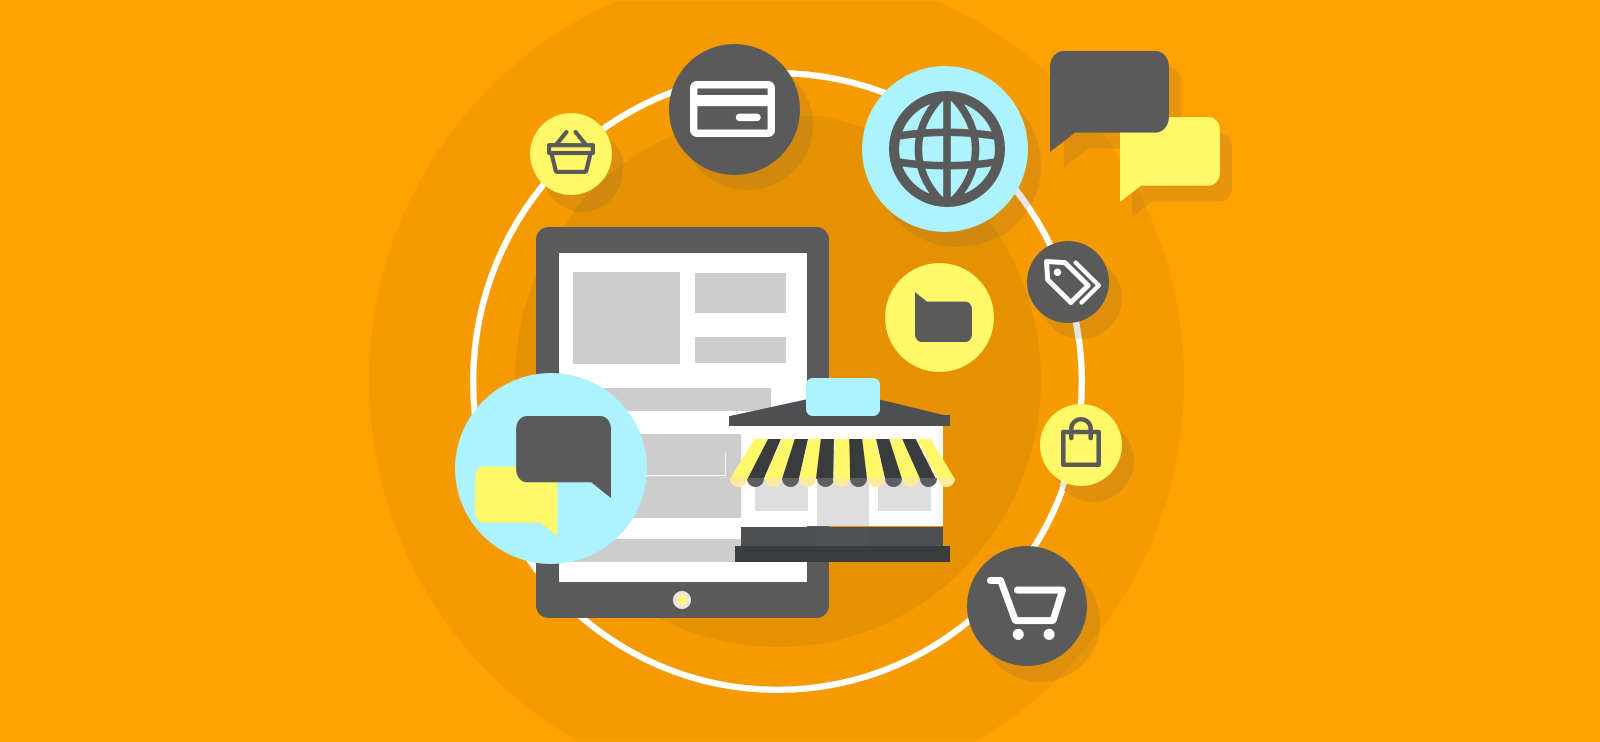 4 Ways To Develop a Marketplace Platform & How To Choose the Best